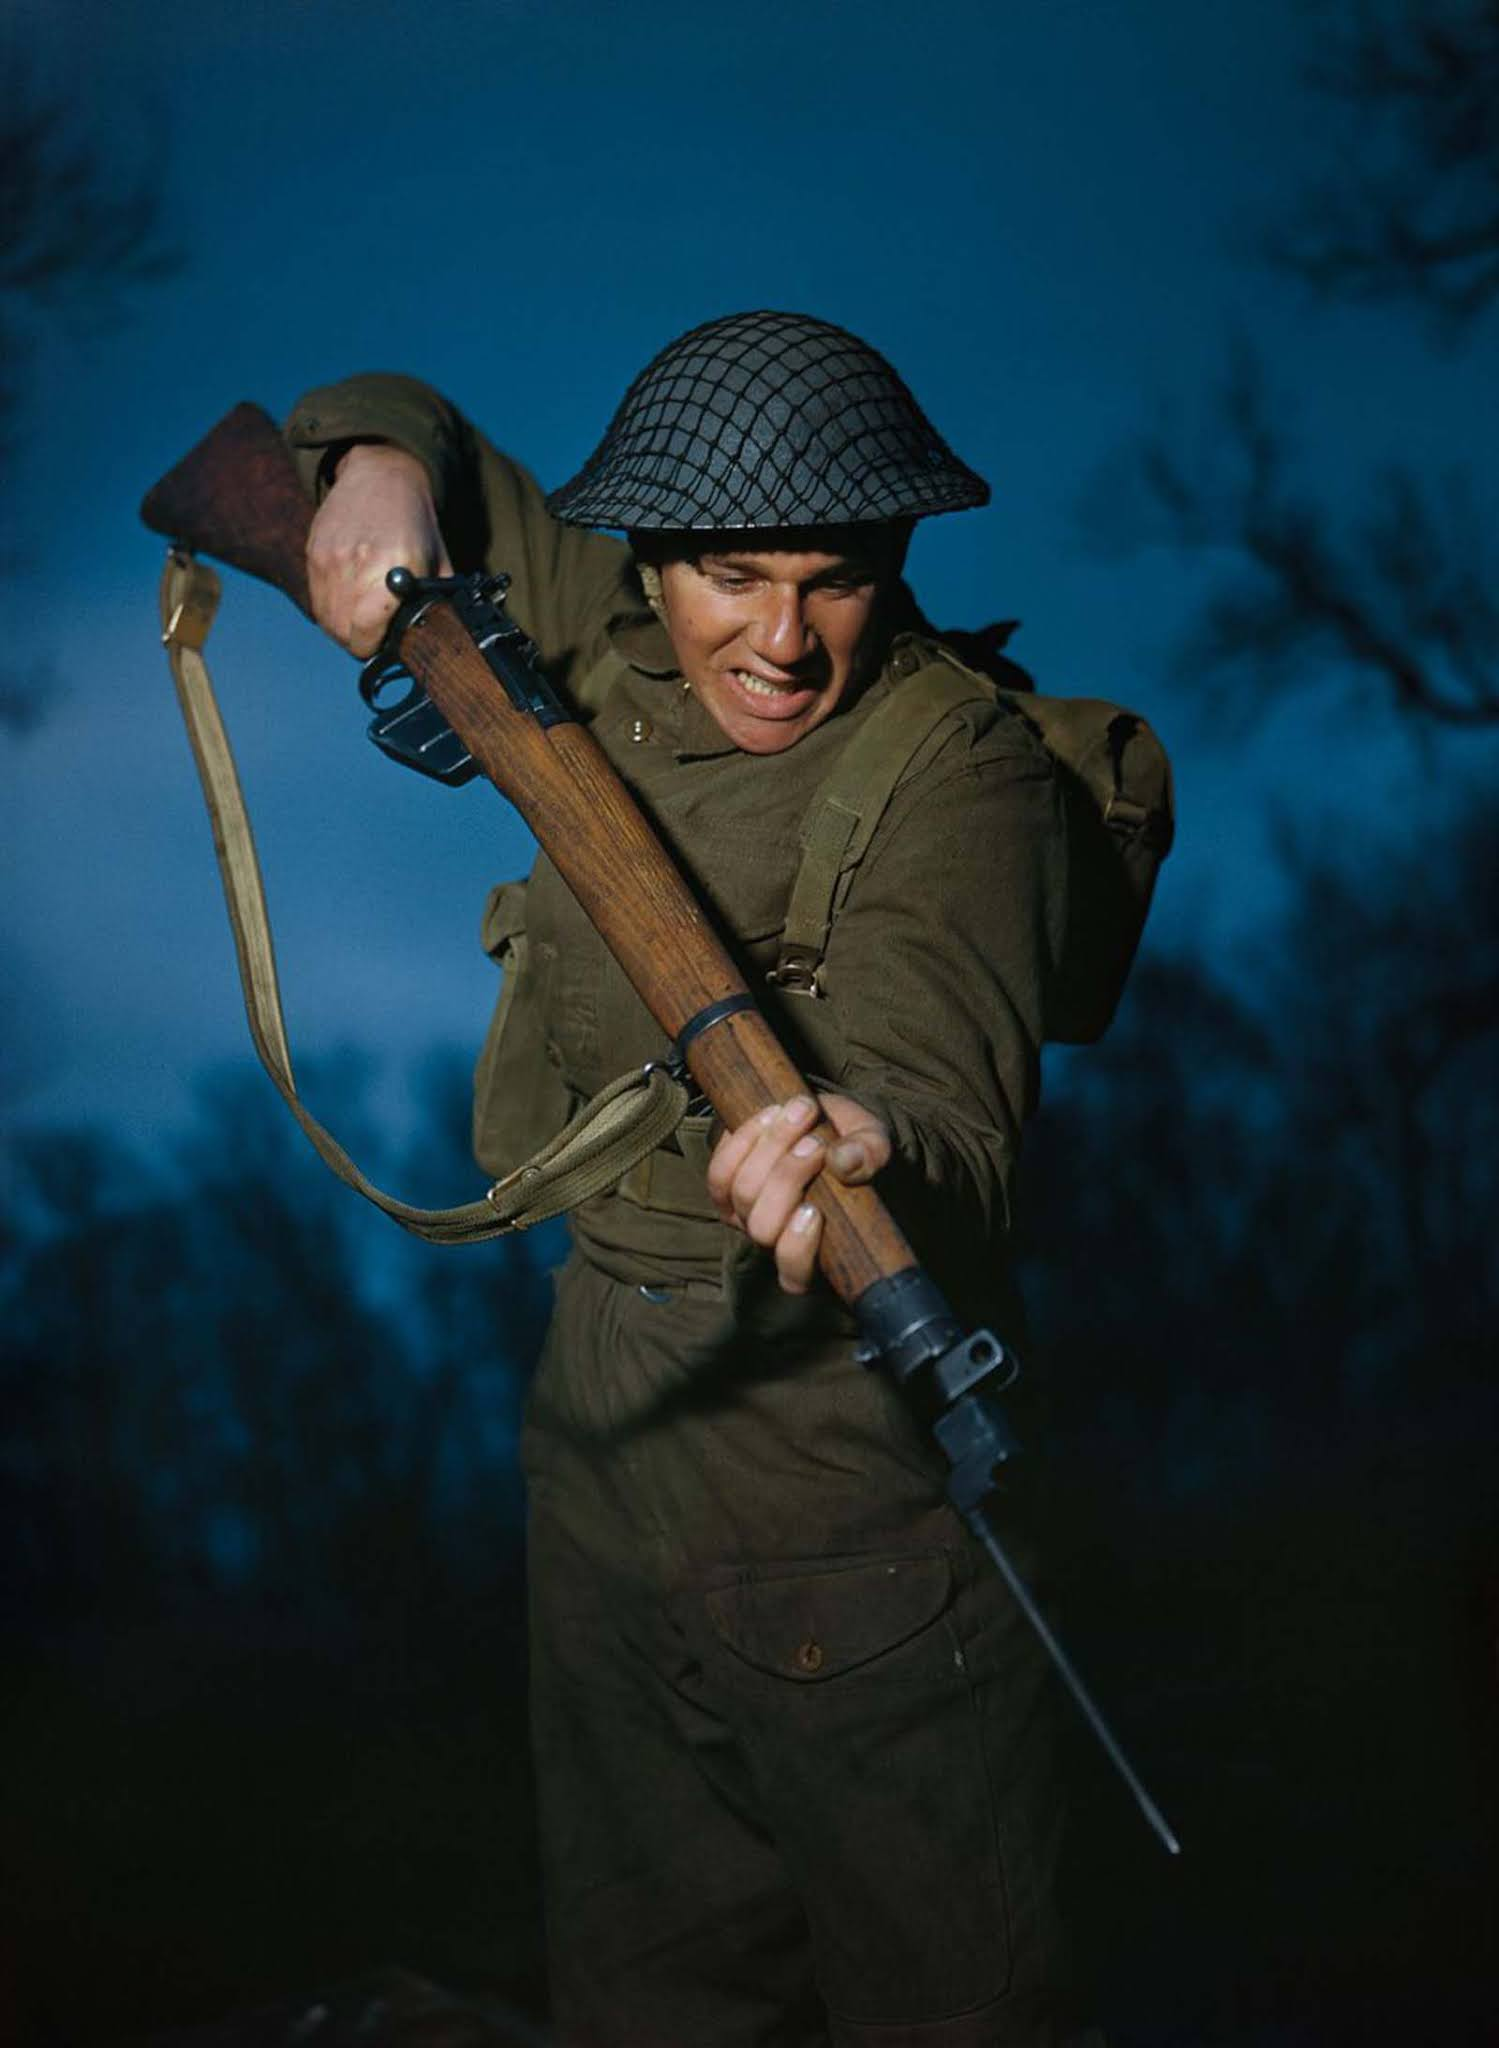 Private Alfred Campin of the 6th Battalion, Durham Light Infantry during battle training in Britain. 1944.